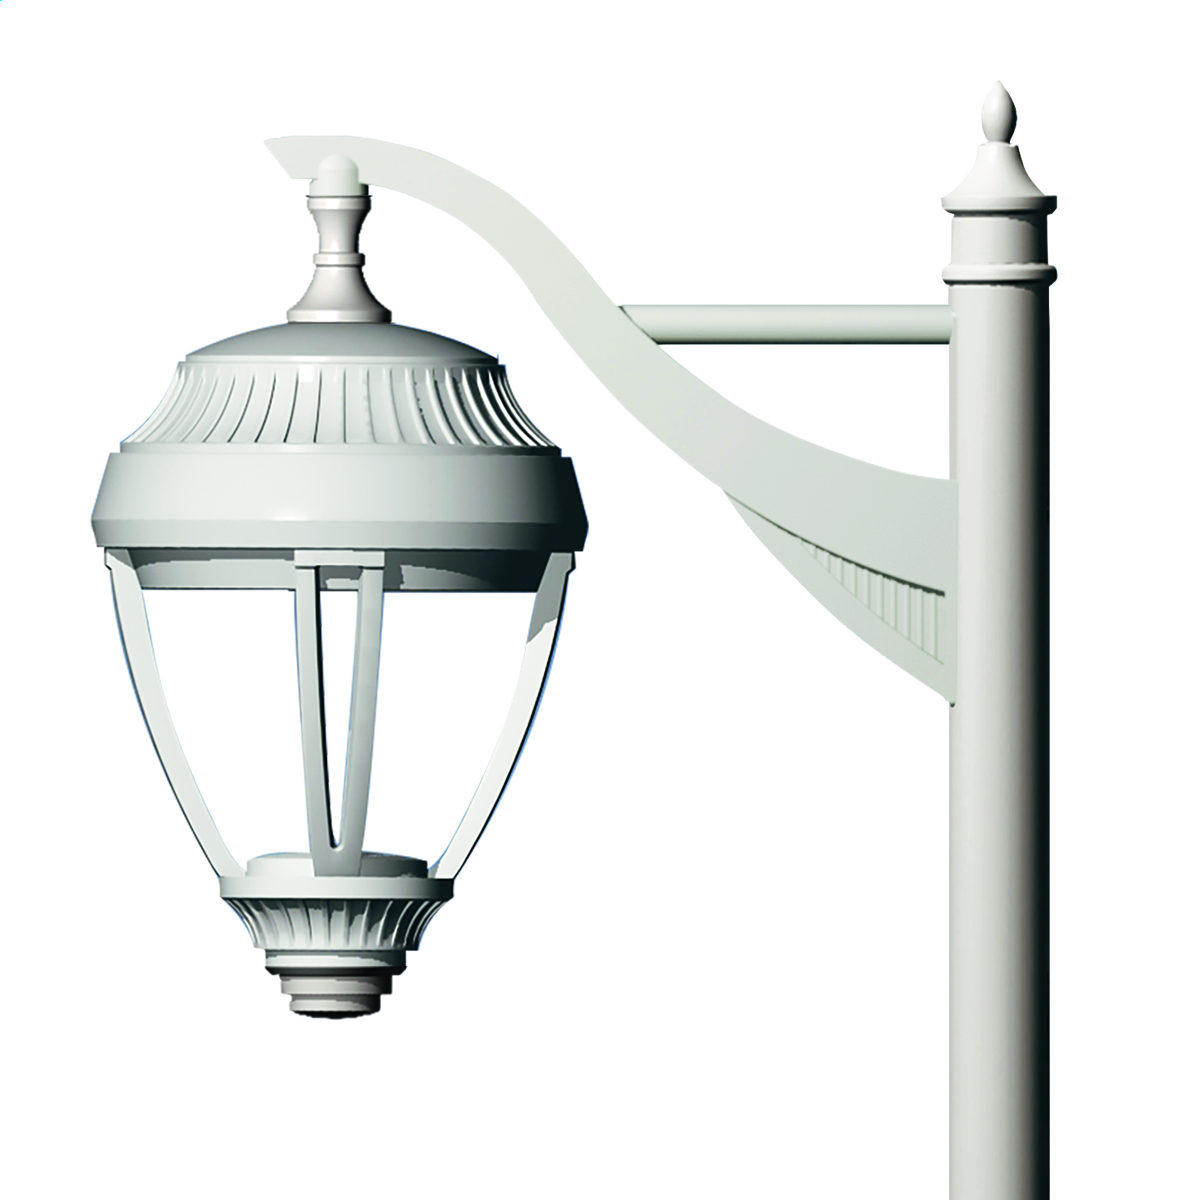 Side pole neo classic arm poles arms commercial outdoor side pole neo classic arm by kim lighting workwithnaturefo